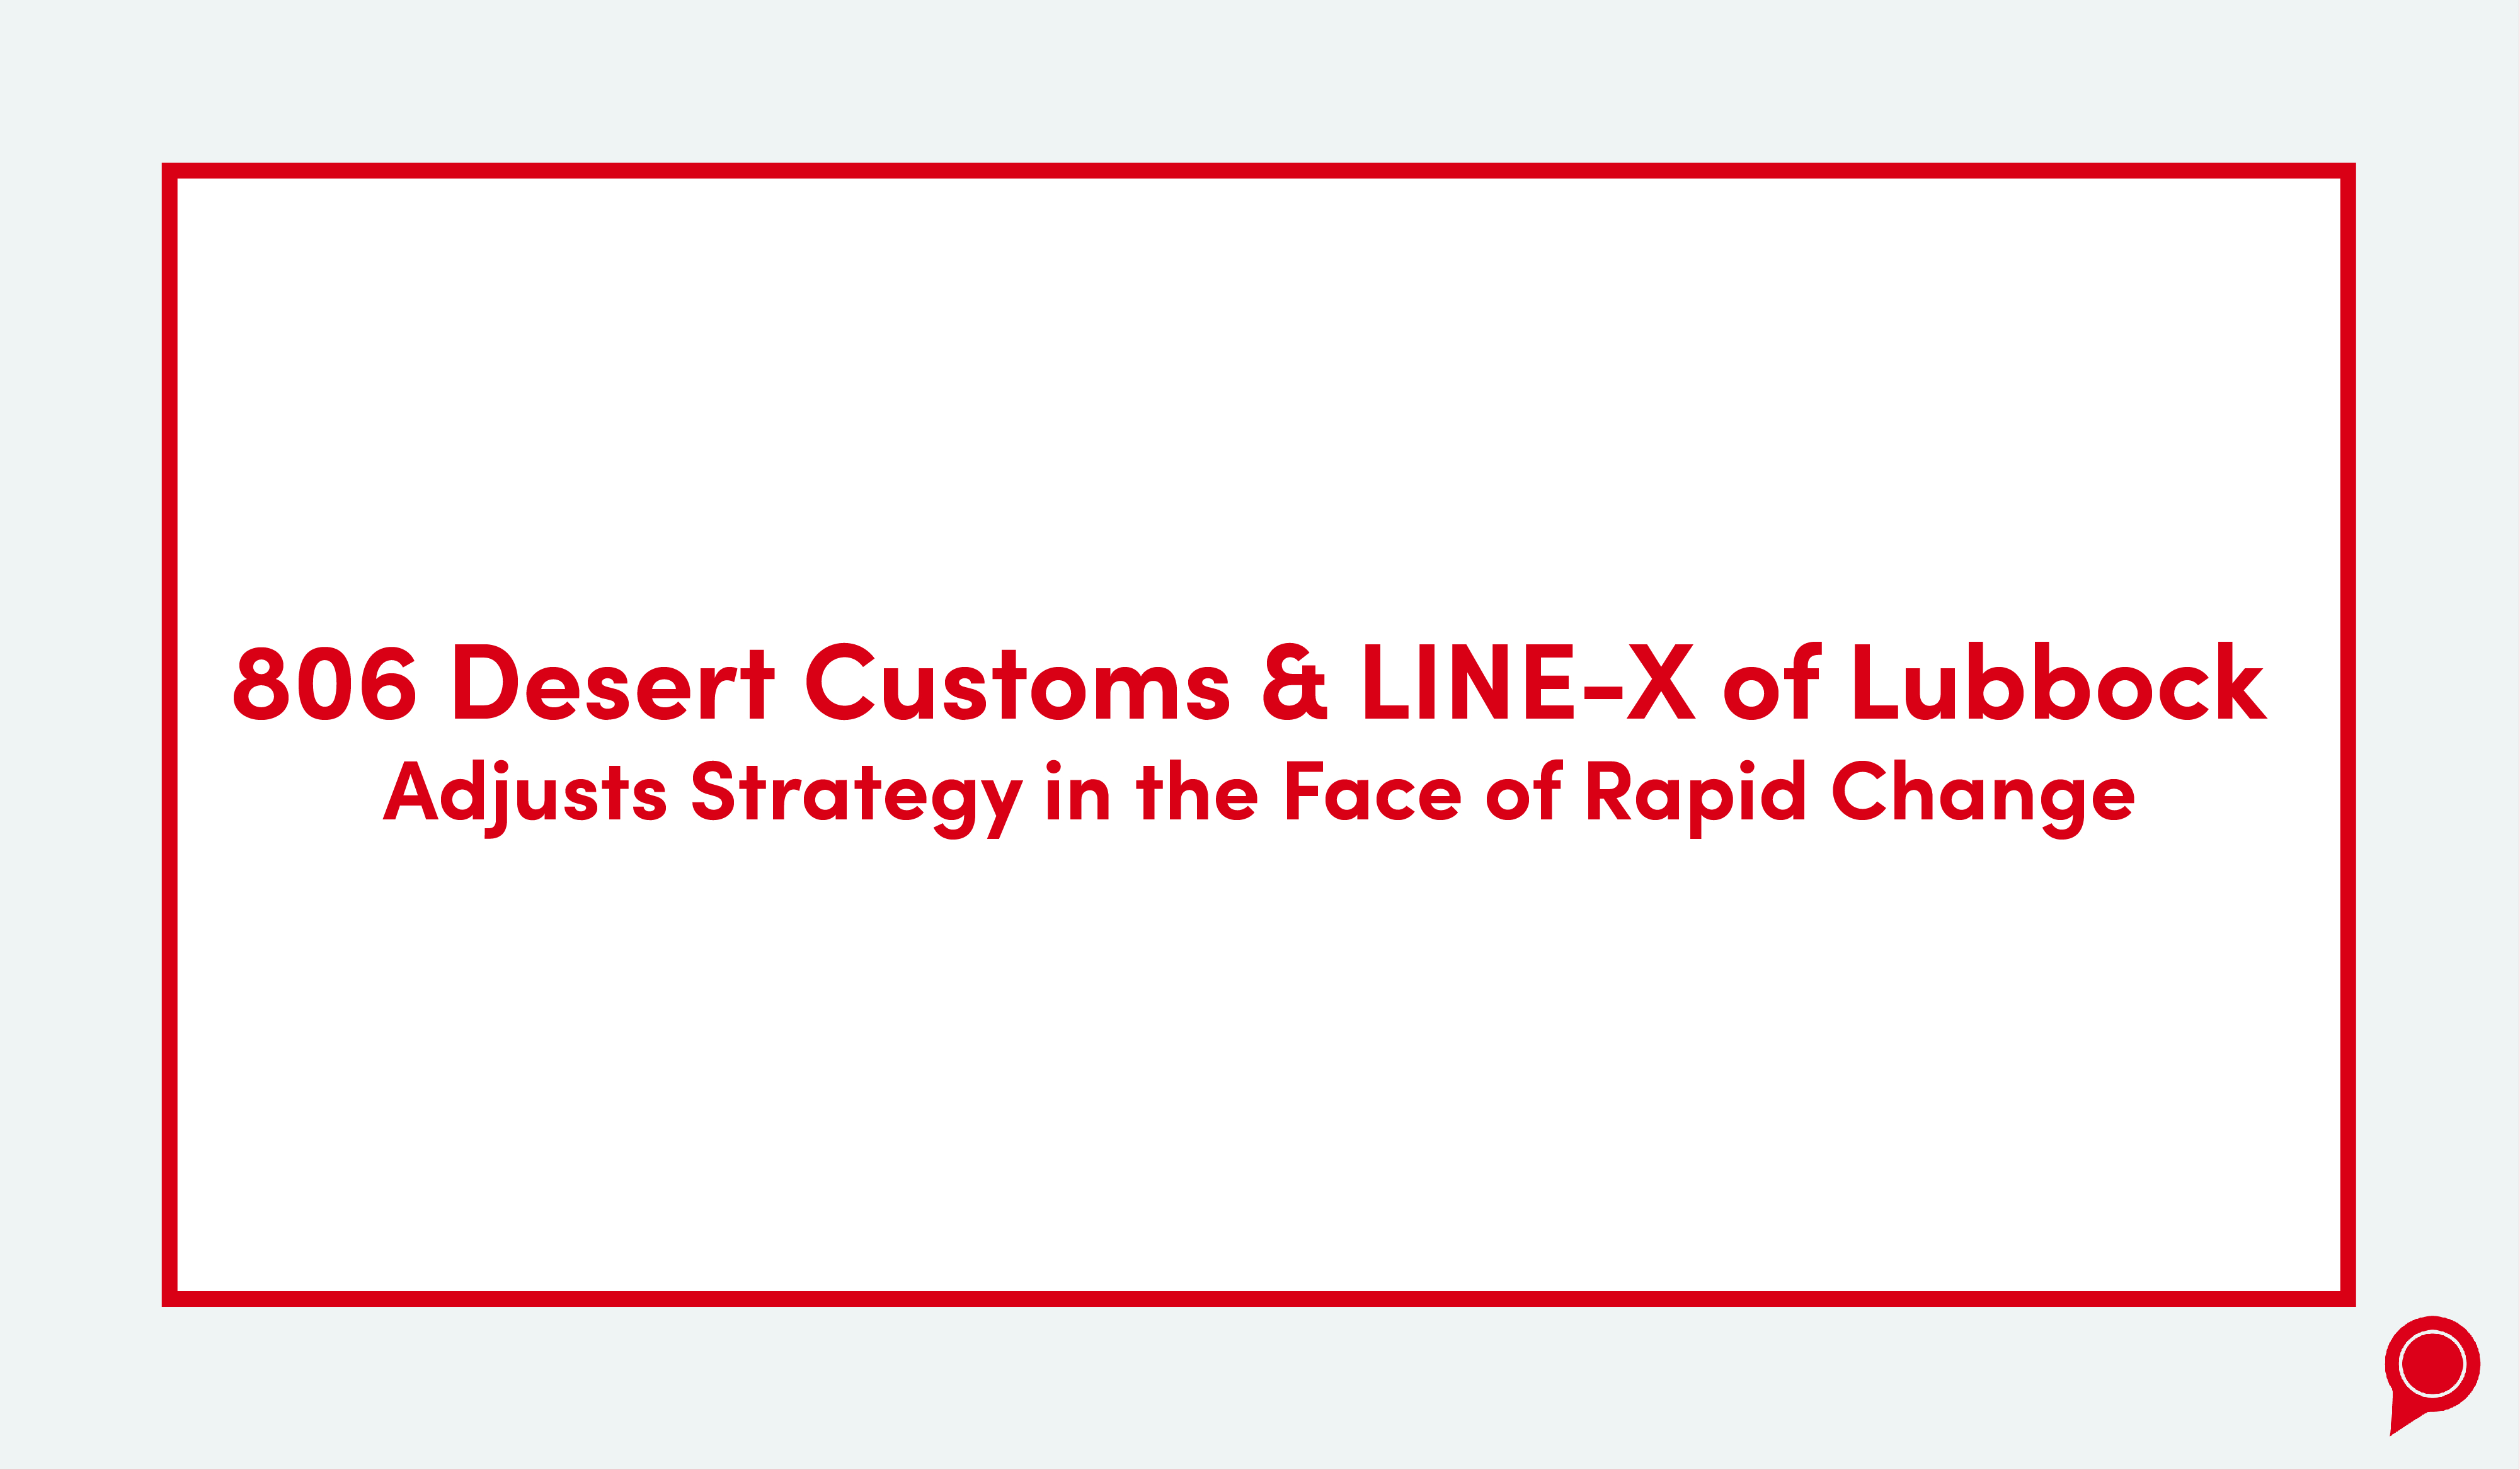 806 Desert Customs & Line-X of Lubbock adjusts strategy in the face of rapid change